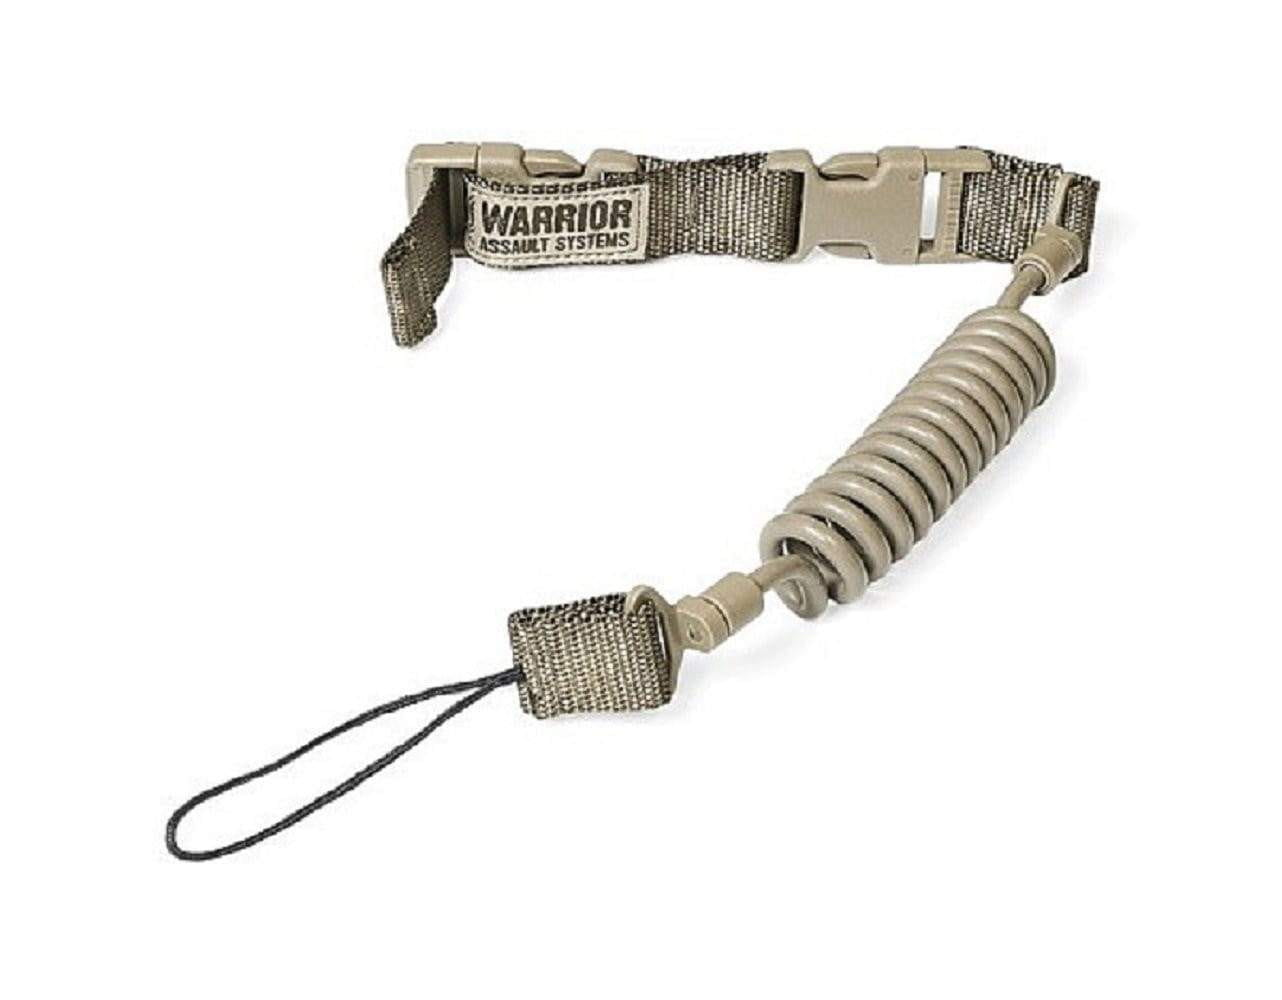 Warrior Assault Systems Tactical Pistol Lanyard - CHK-SHIELD | Outdoor Army - Tactical Gear Shop